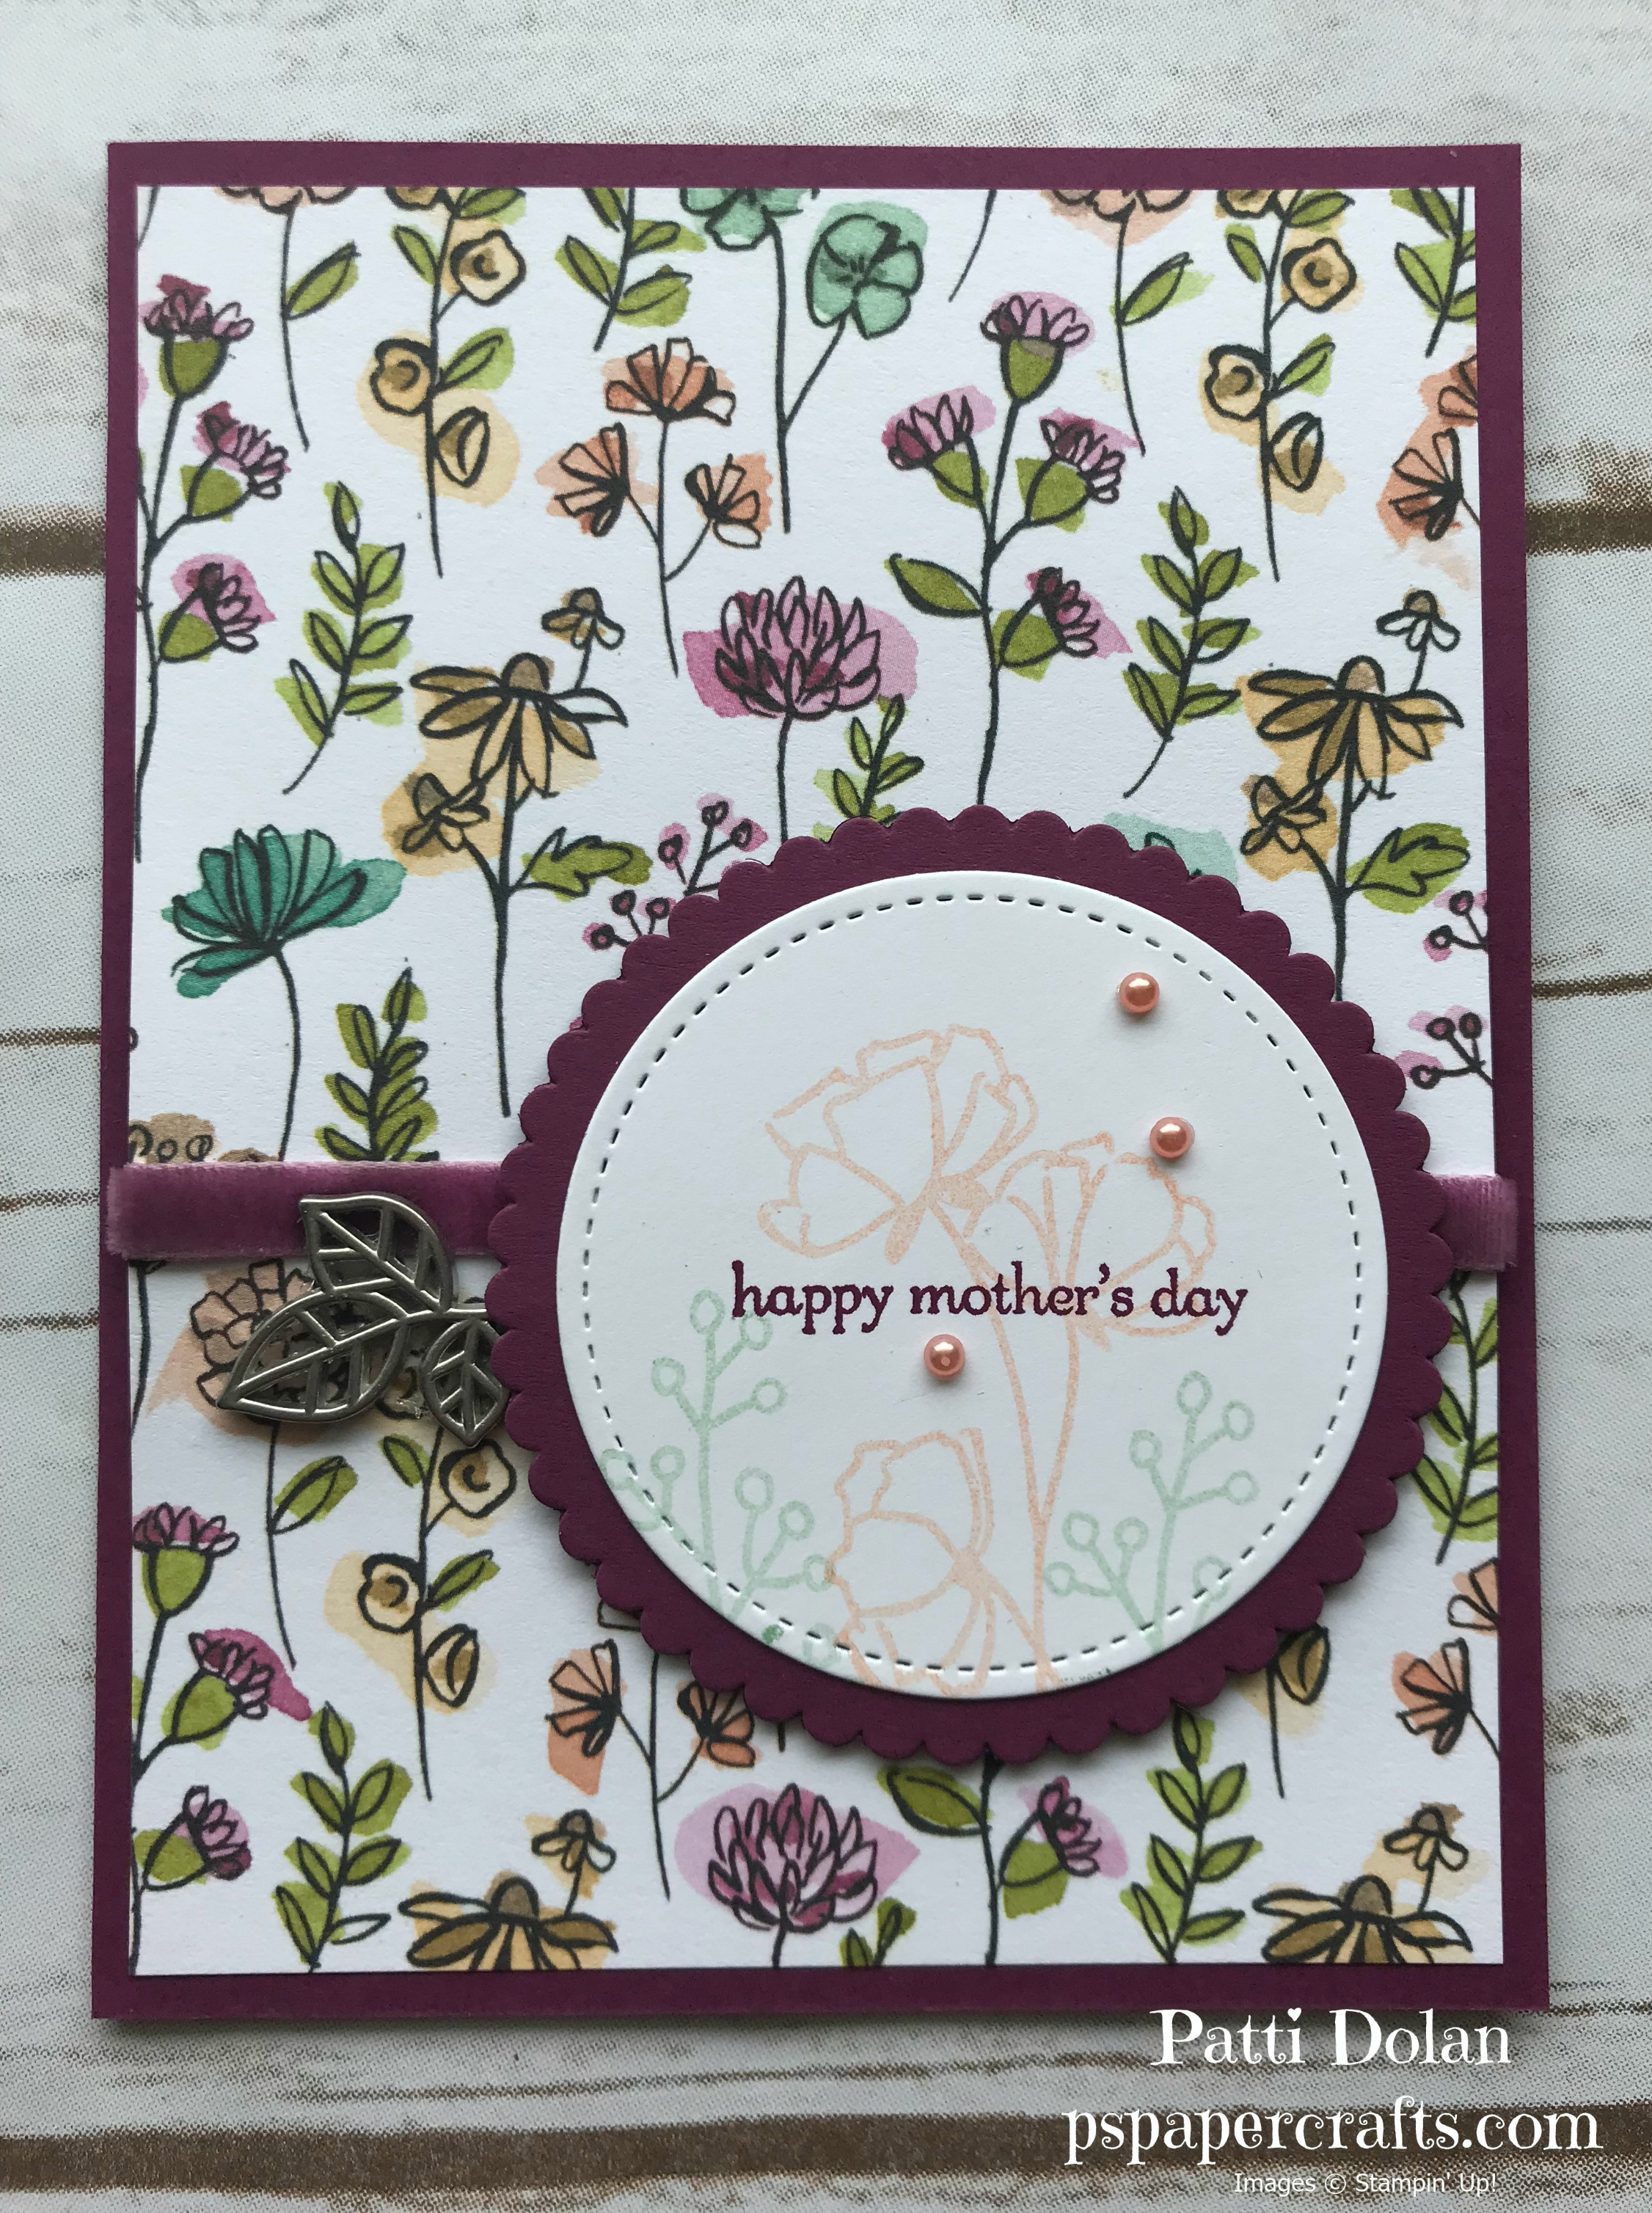 Happy Mother's Day - Share What You Love.jpg